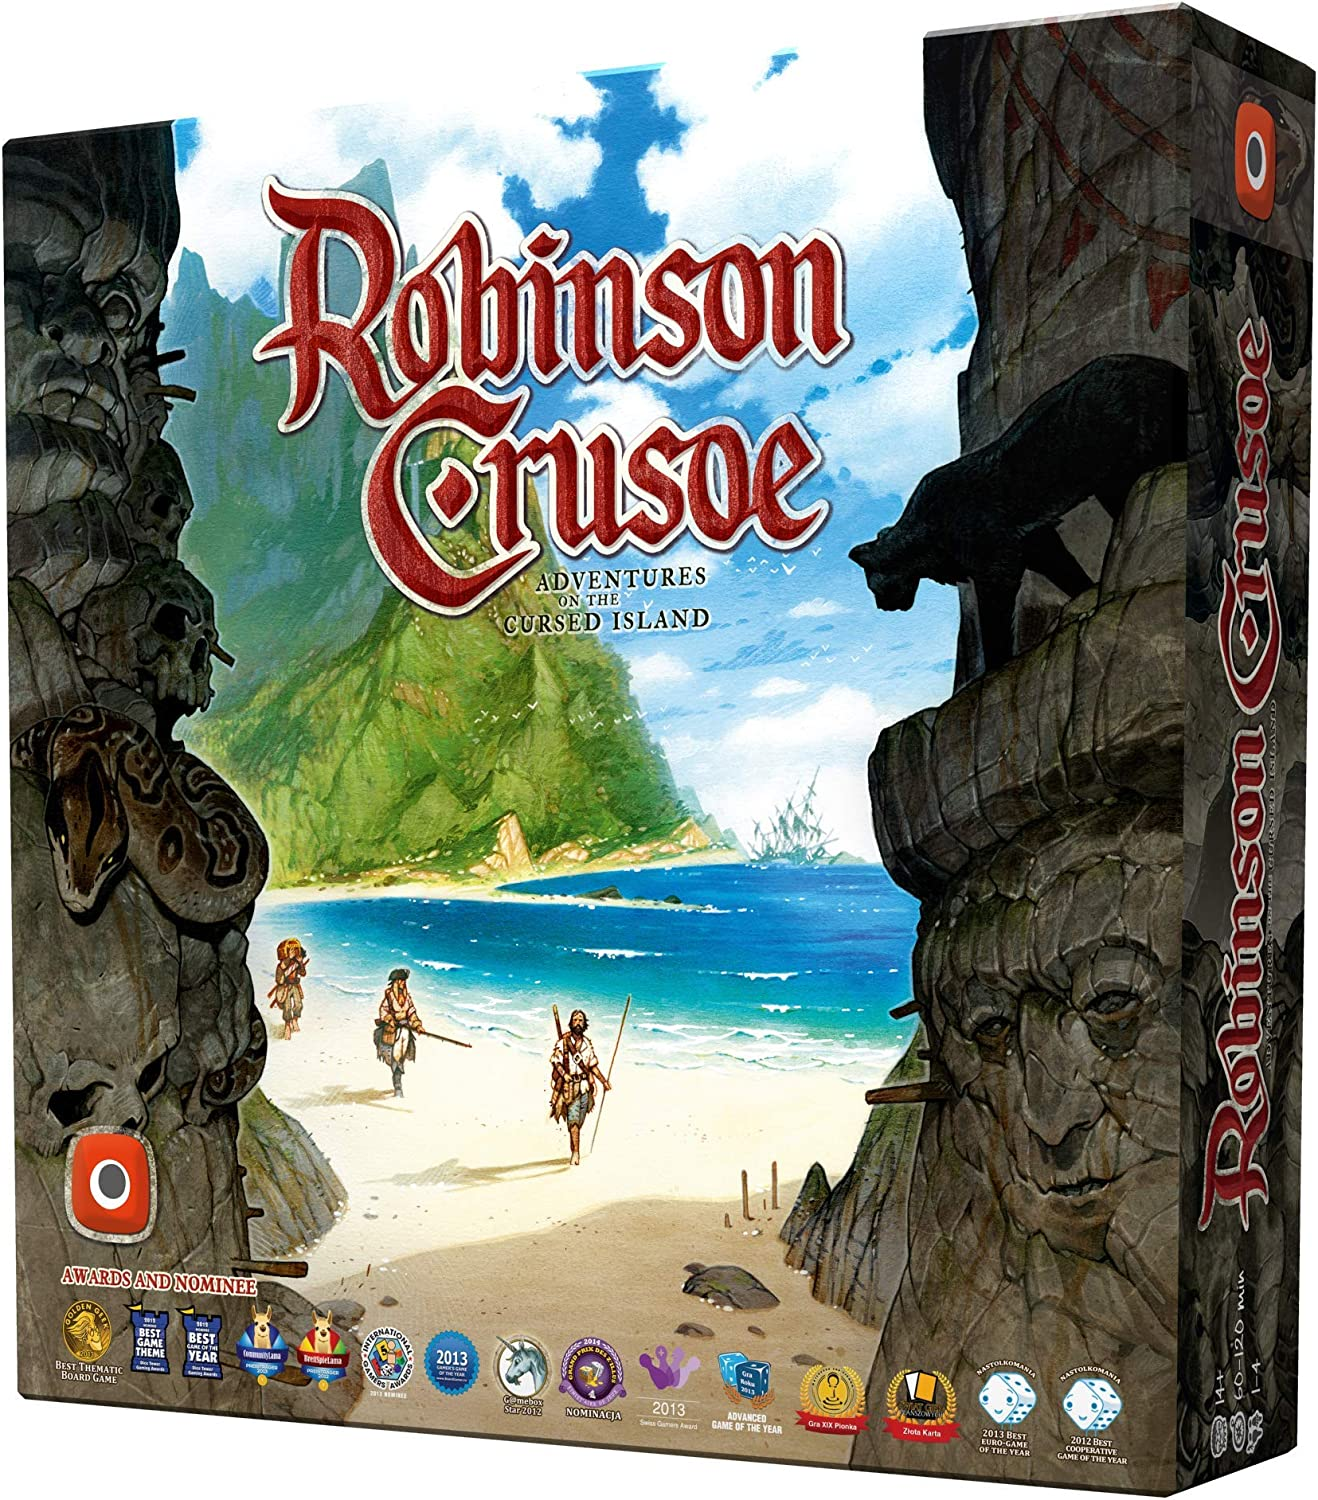 Wydawnictwo Portal POP00361 Robinson Crusoe: Adventures on The Cursed Island, 0064PG: Amazon.es: Juguetes y juegos